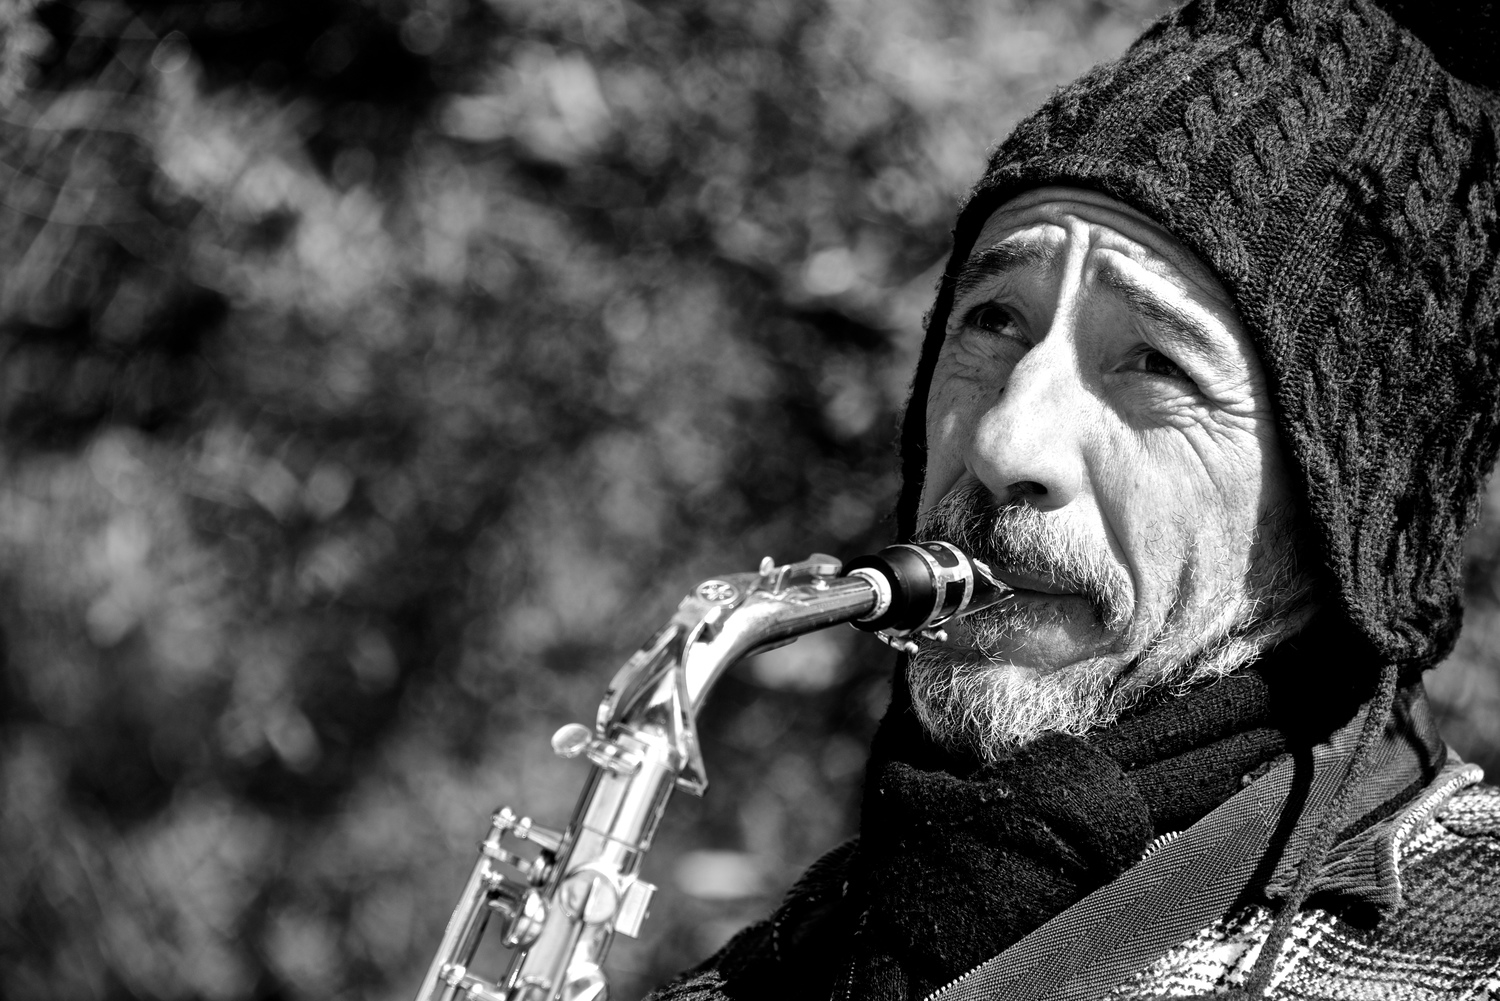 Mono close-up of bearded saxophonist in hat.jpg